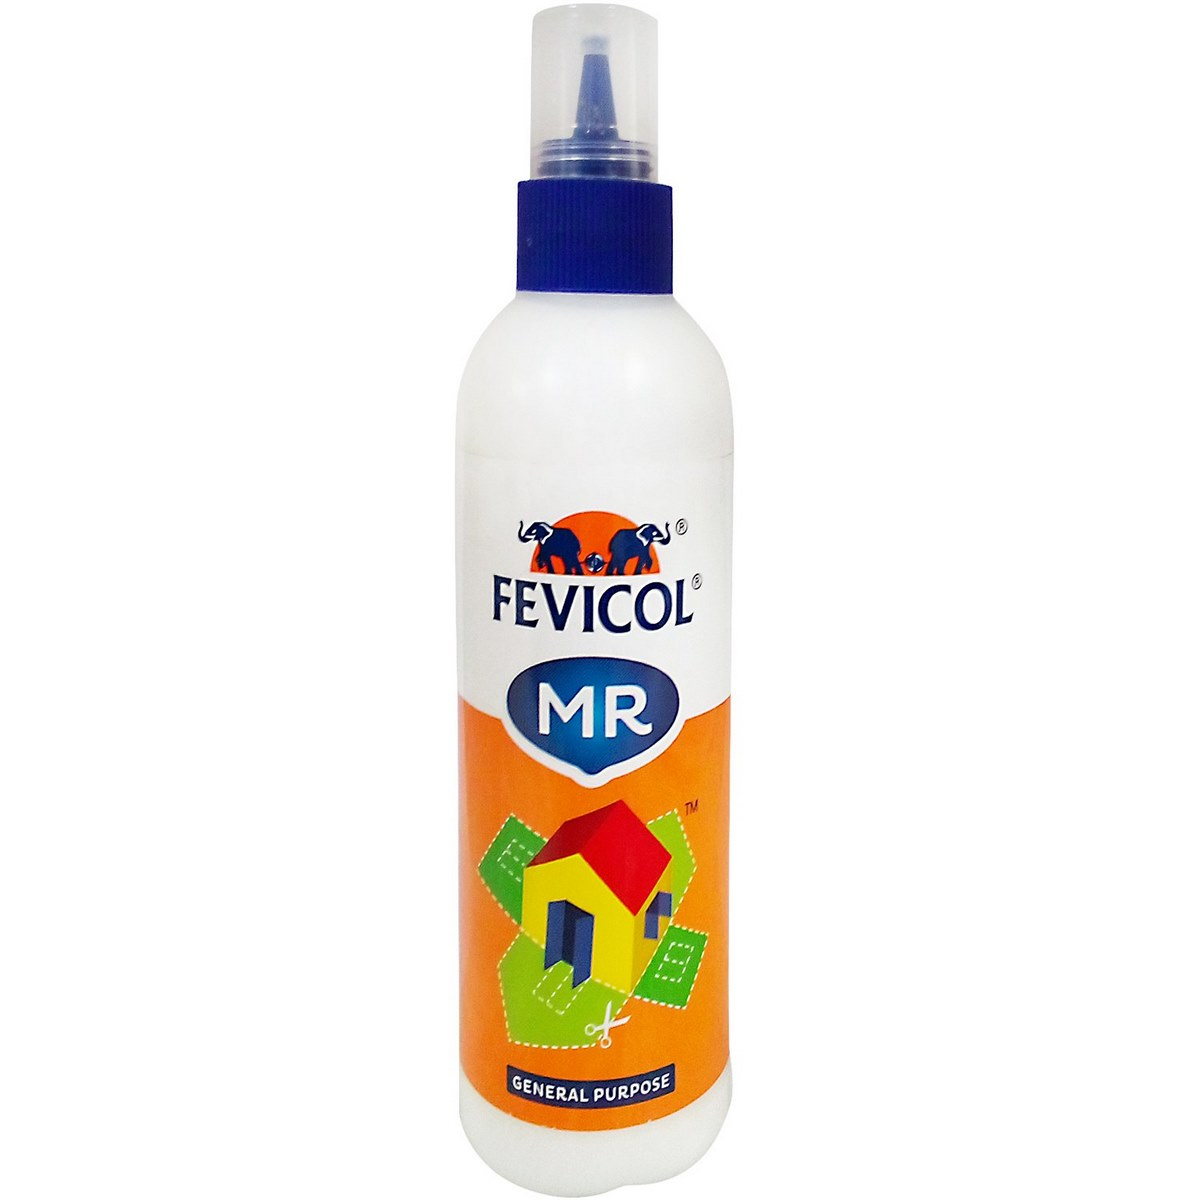 Fevicol White Glue HI1118-2